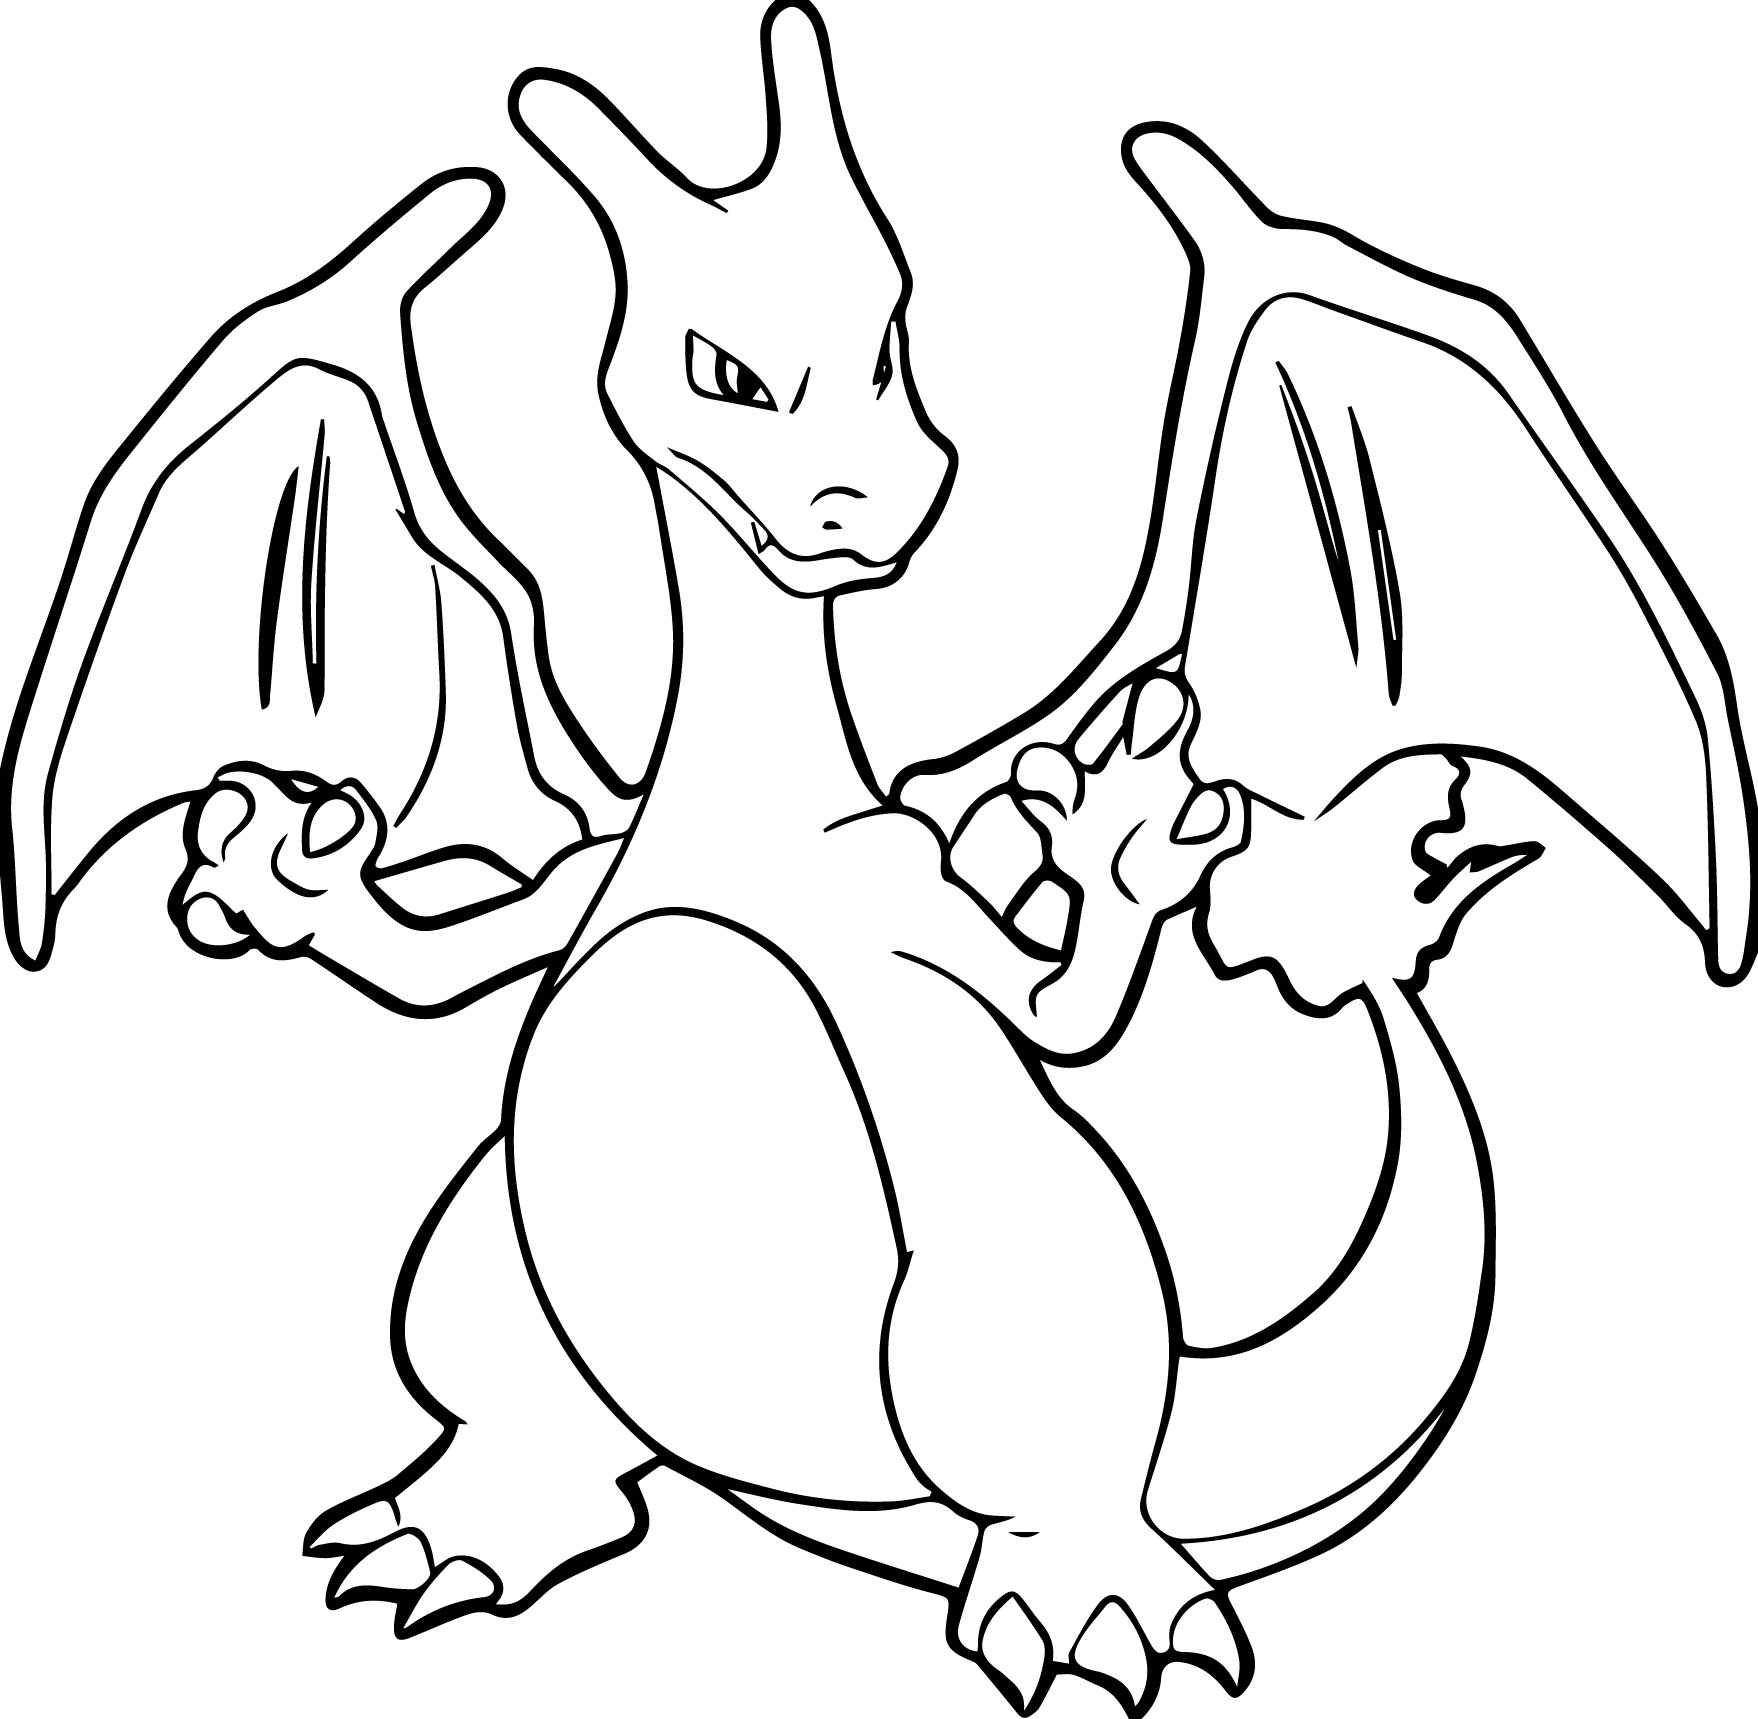 charmander colouring pages charmander coloring page coloring home pages colouring charmander